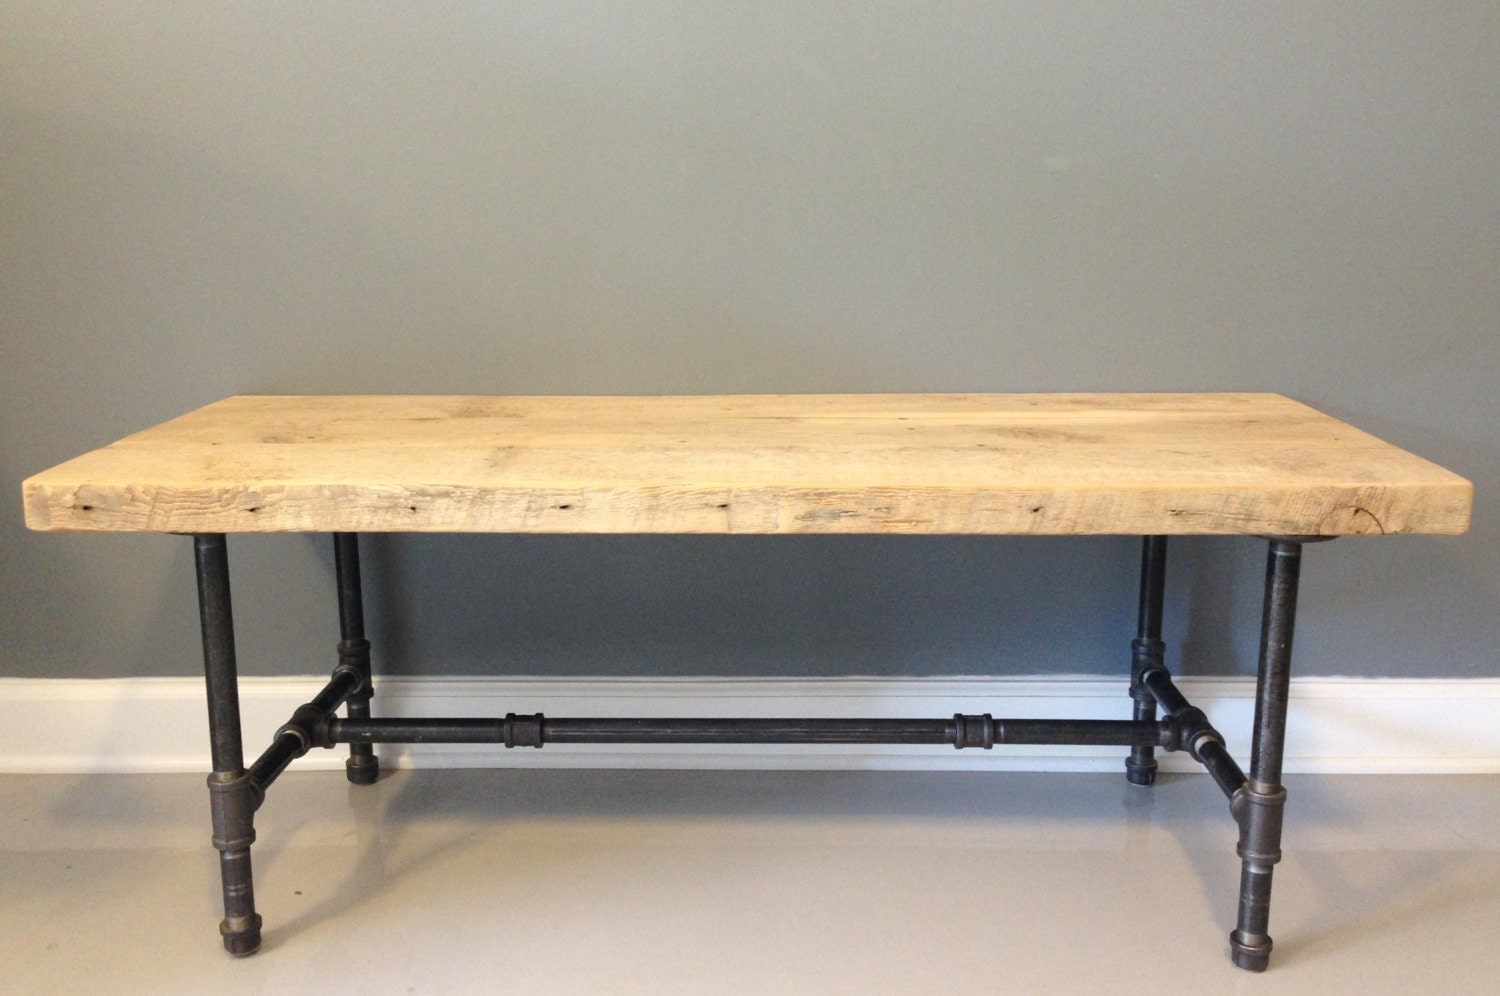 Reclaimed Wood Coffee Table Industrial Galvanized Pipe Reclaimed  Reclaimed Wood Coffee Table With Industrial Pipe Legs by DendroCo